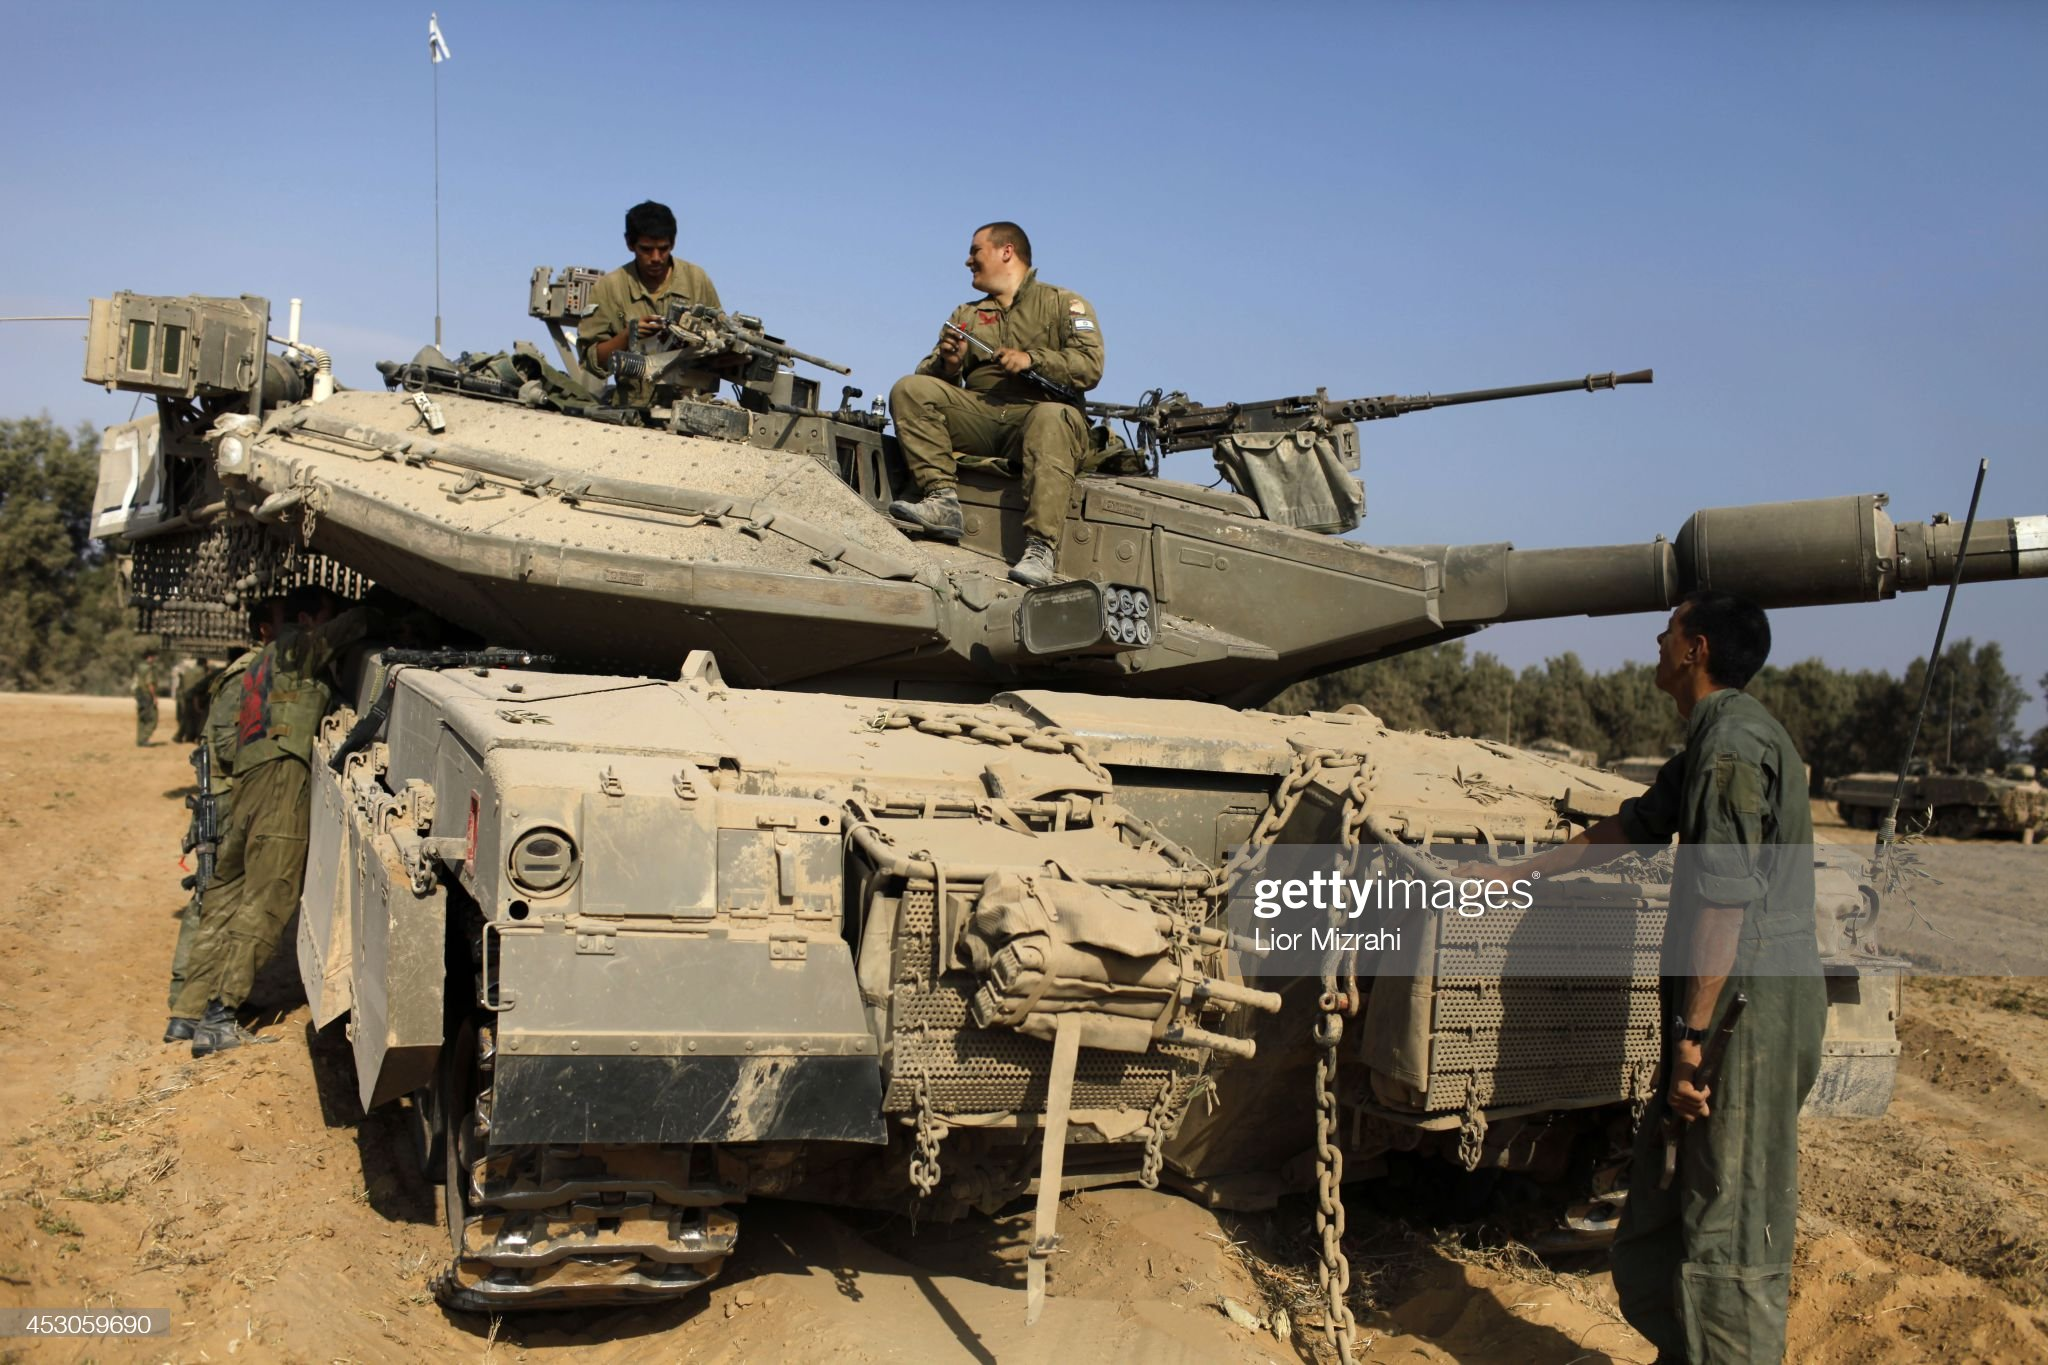 https://media.gettyimages.com/photos/israeli-soldiers-prepare-their-tanks-in-a-deployment-area-on-august-picture-id453059690?s=2048x2048